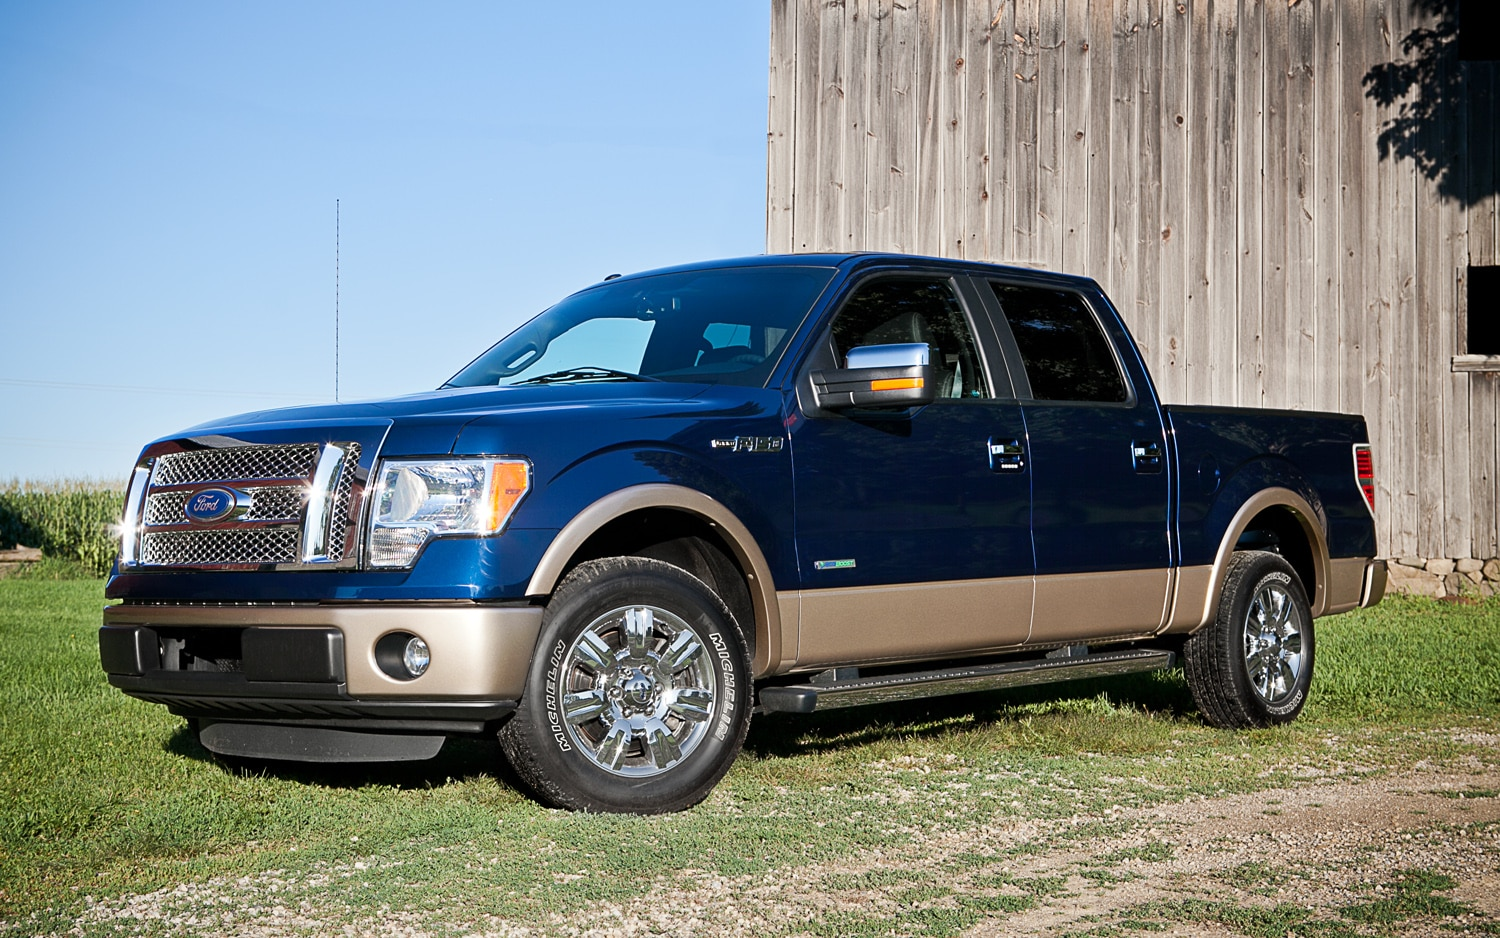 2011 Ford F 150 Lariat EcoBoost 4x2 Supercrew Front Left Side View1